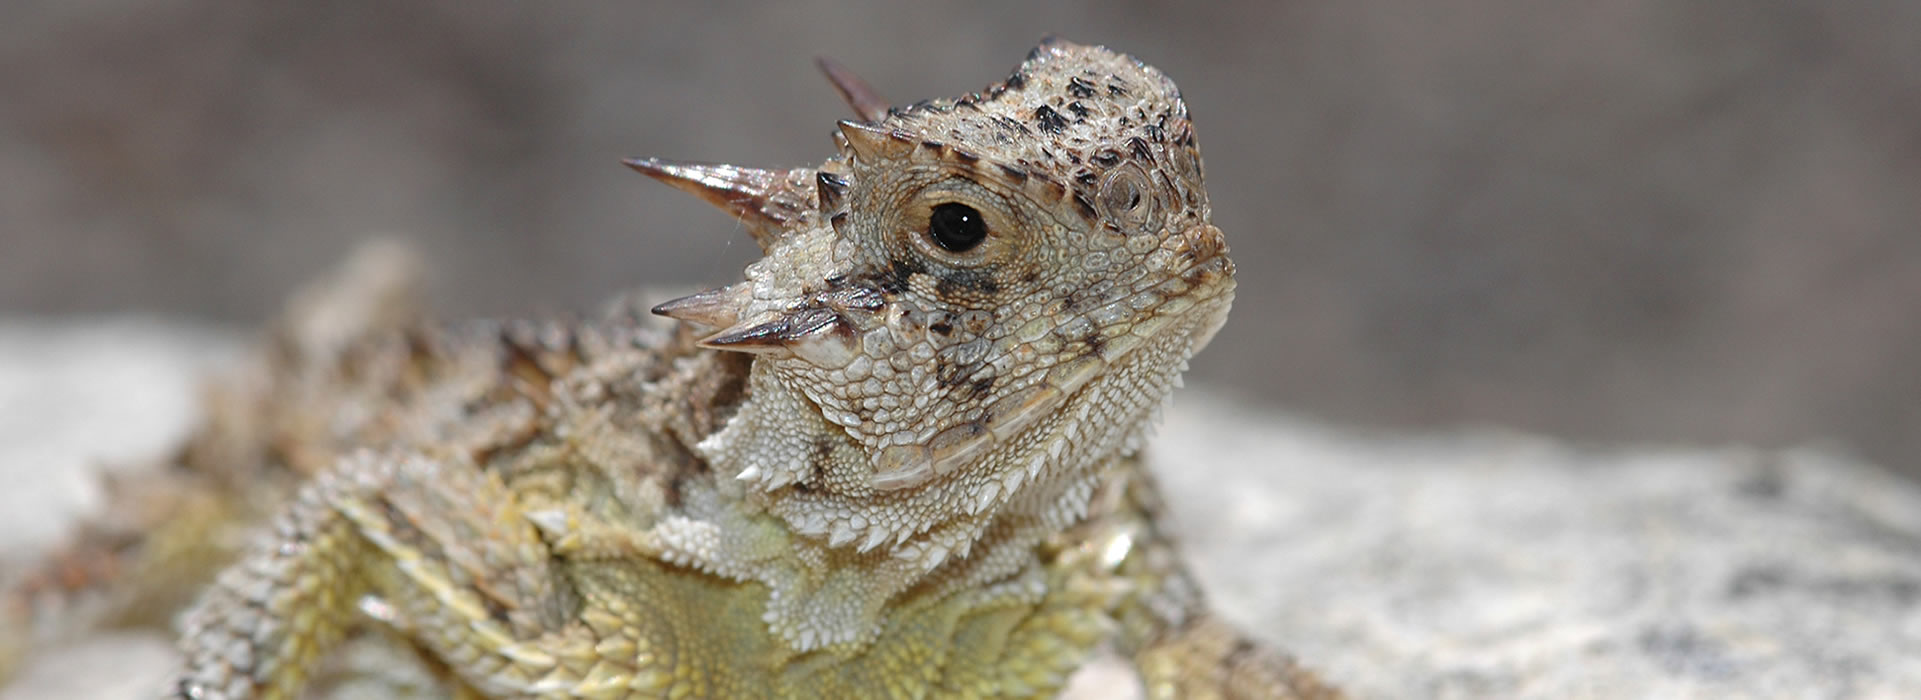 ...and Horned Lizards...